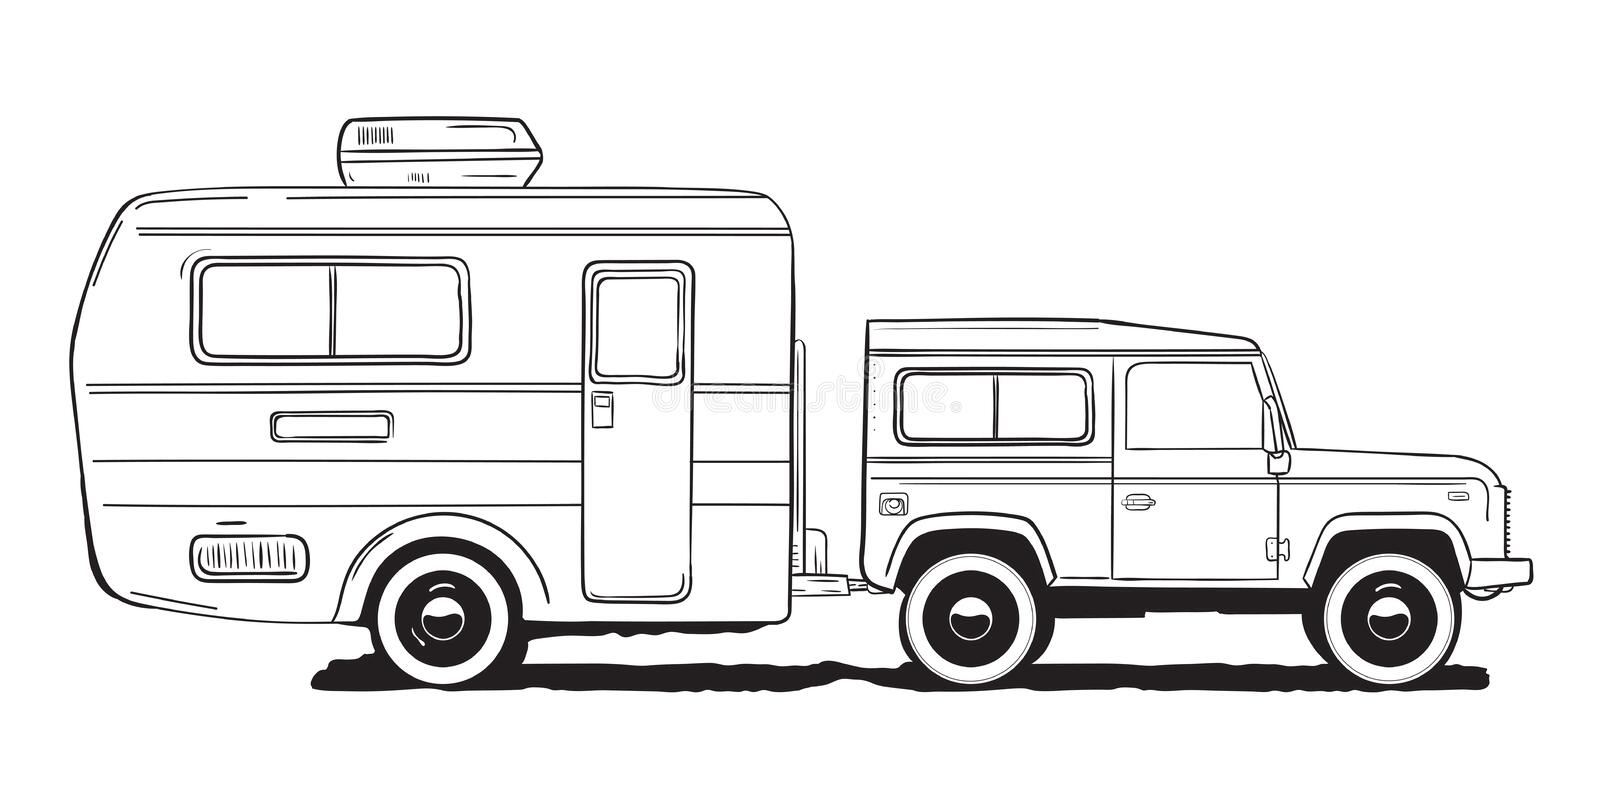 Download Camping Caravan Motorhome Amper Car With Trailer Black And White Hand Drawn